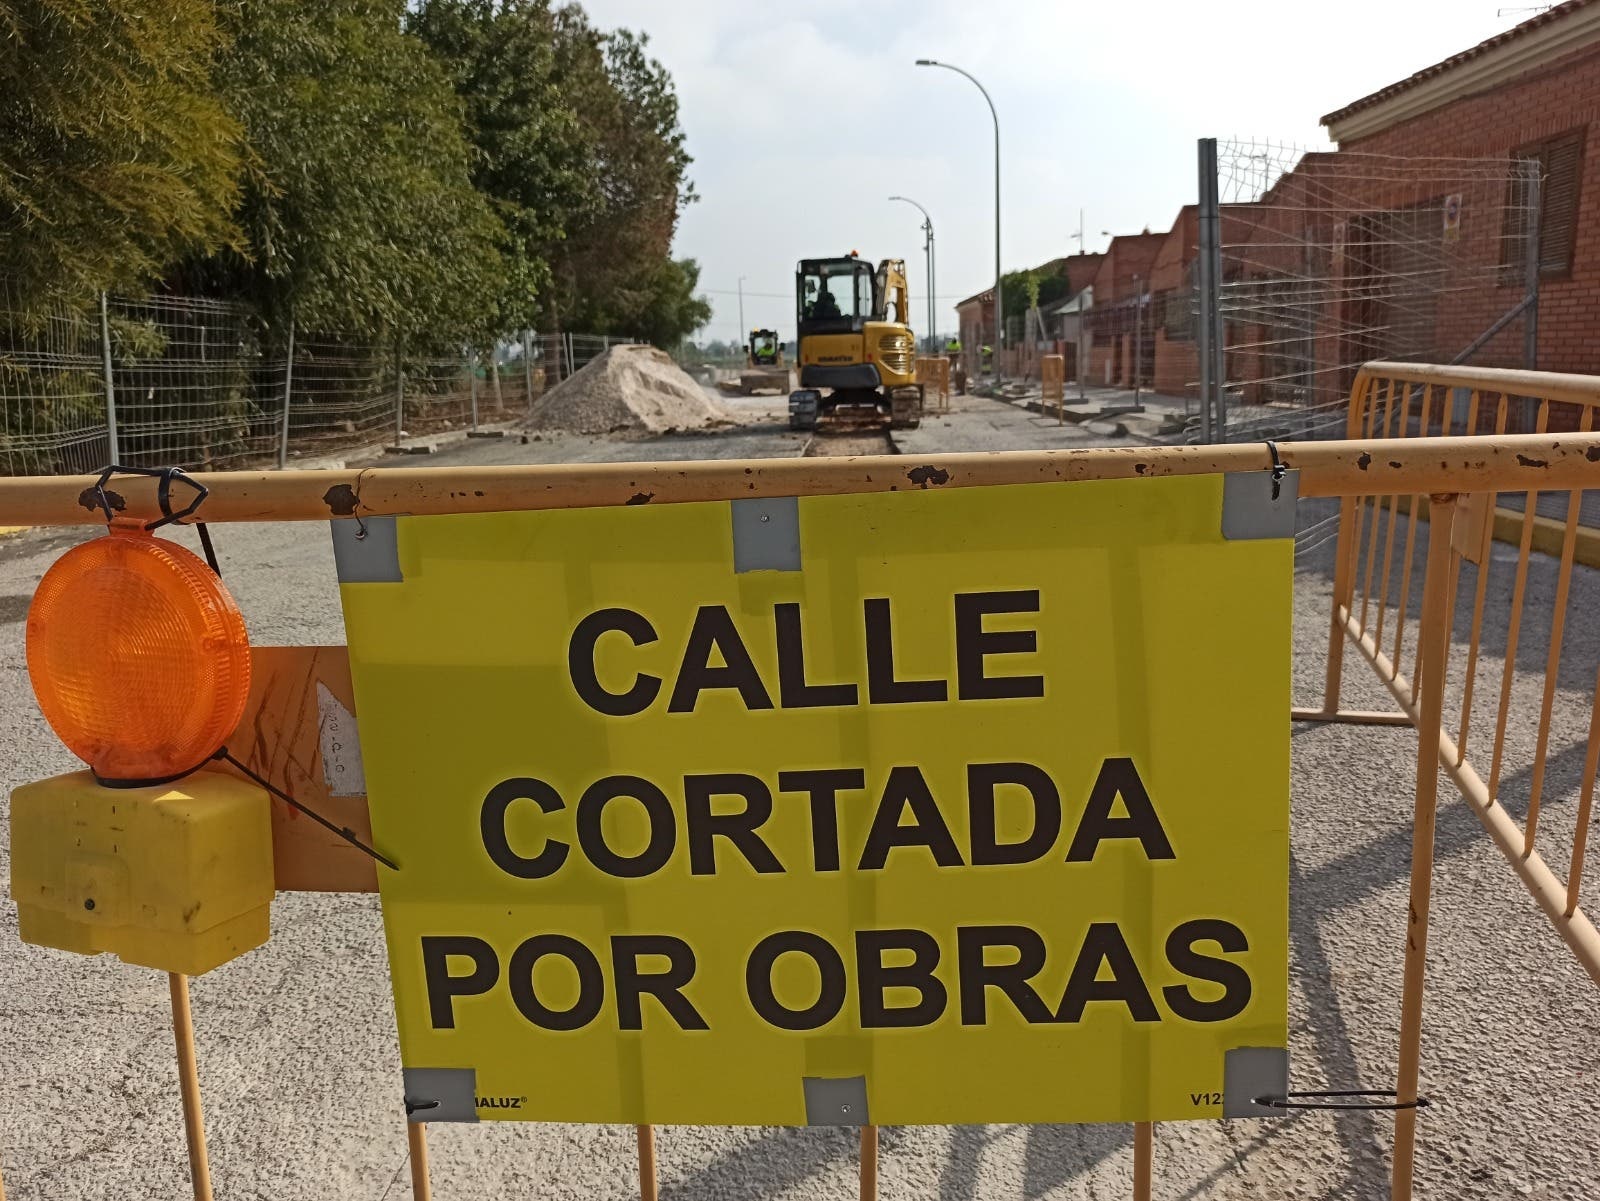 New sewer is just the start of 'various projects' promised by mayor in popular expat area on Spain's Costa Blanca